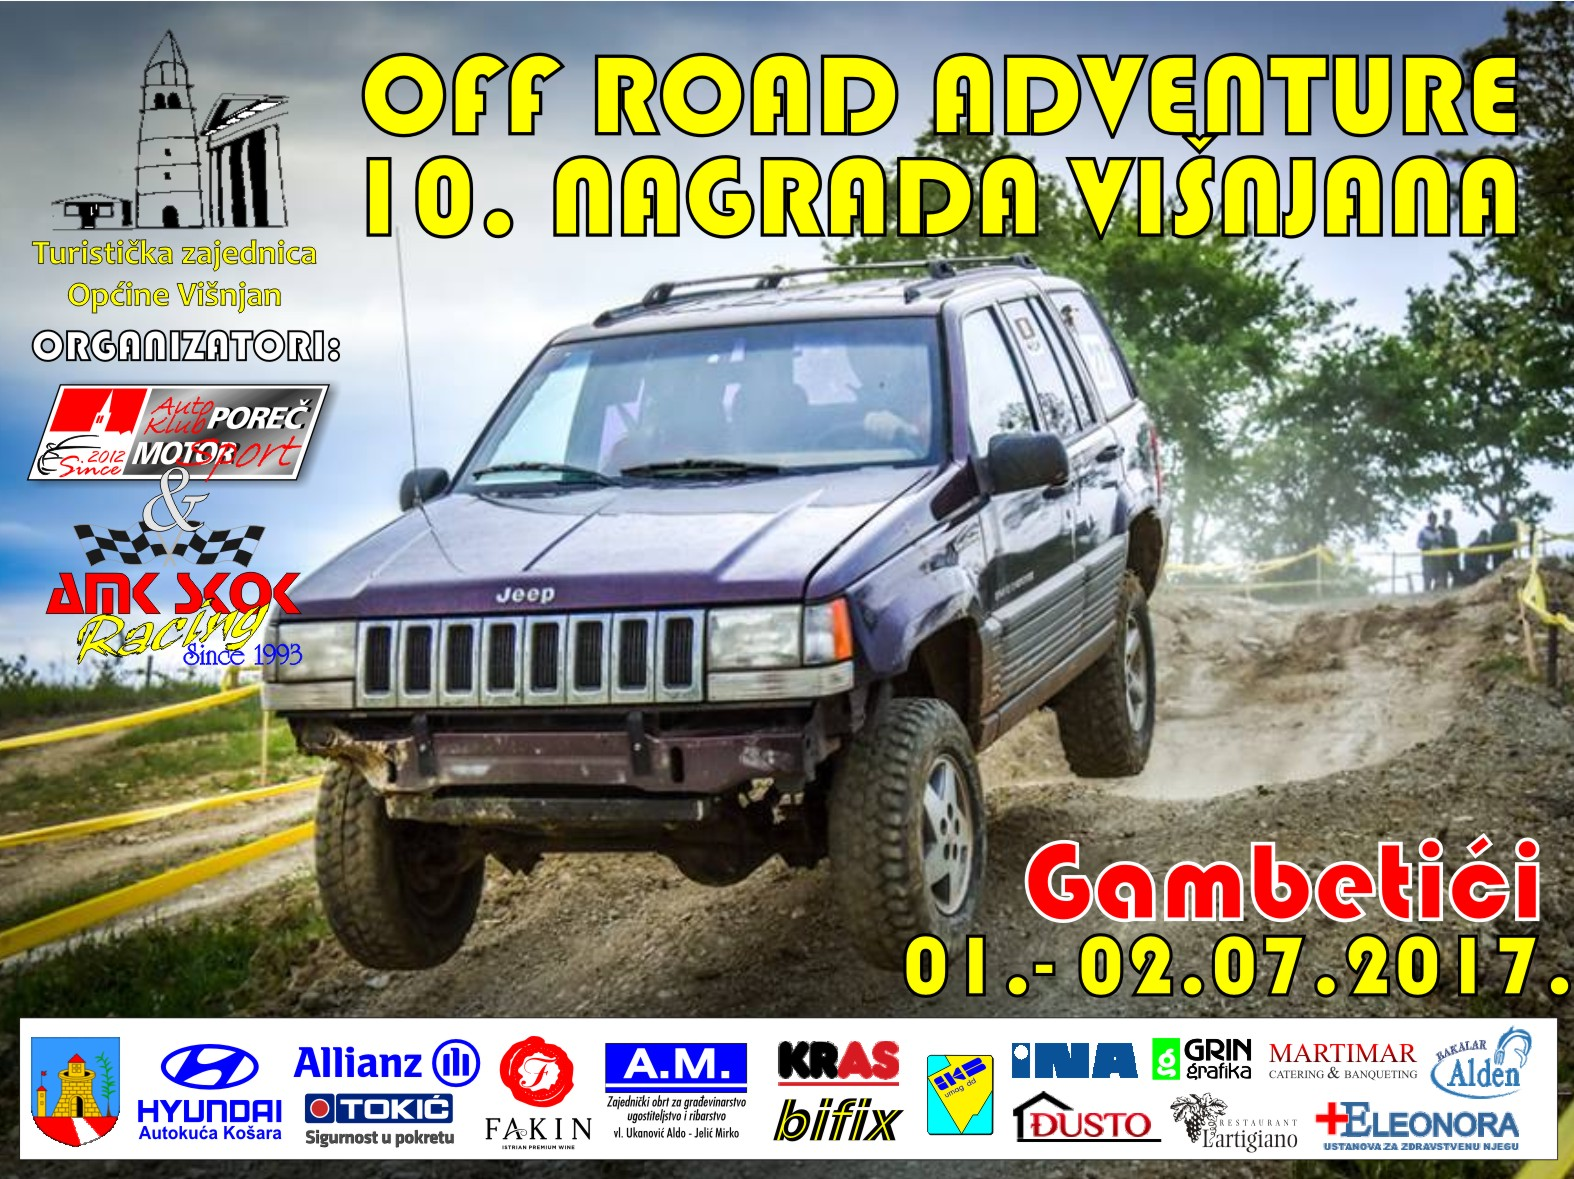 Off road adventure - 10. Nagrada Višnjana 2017